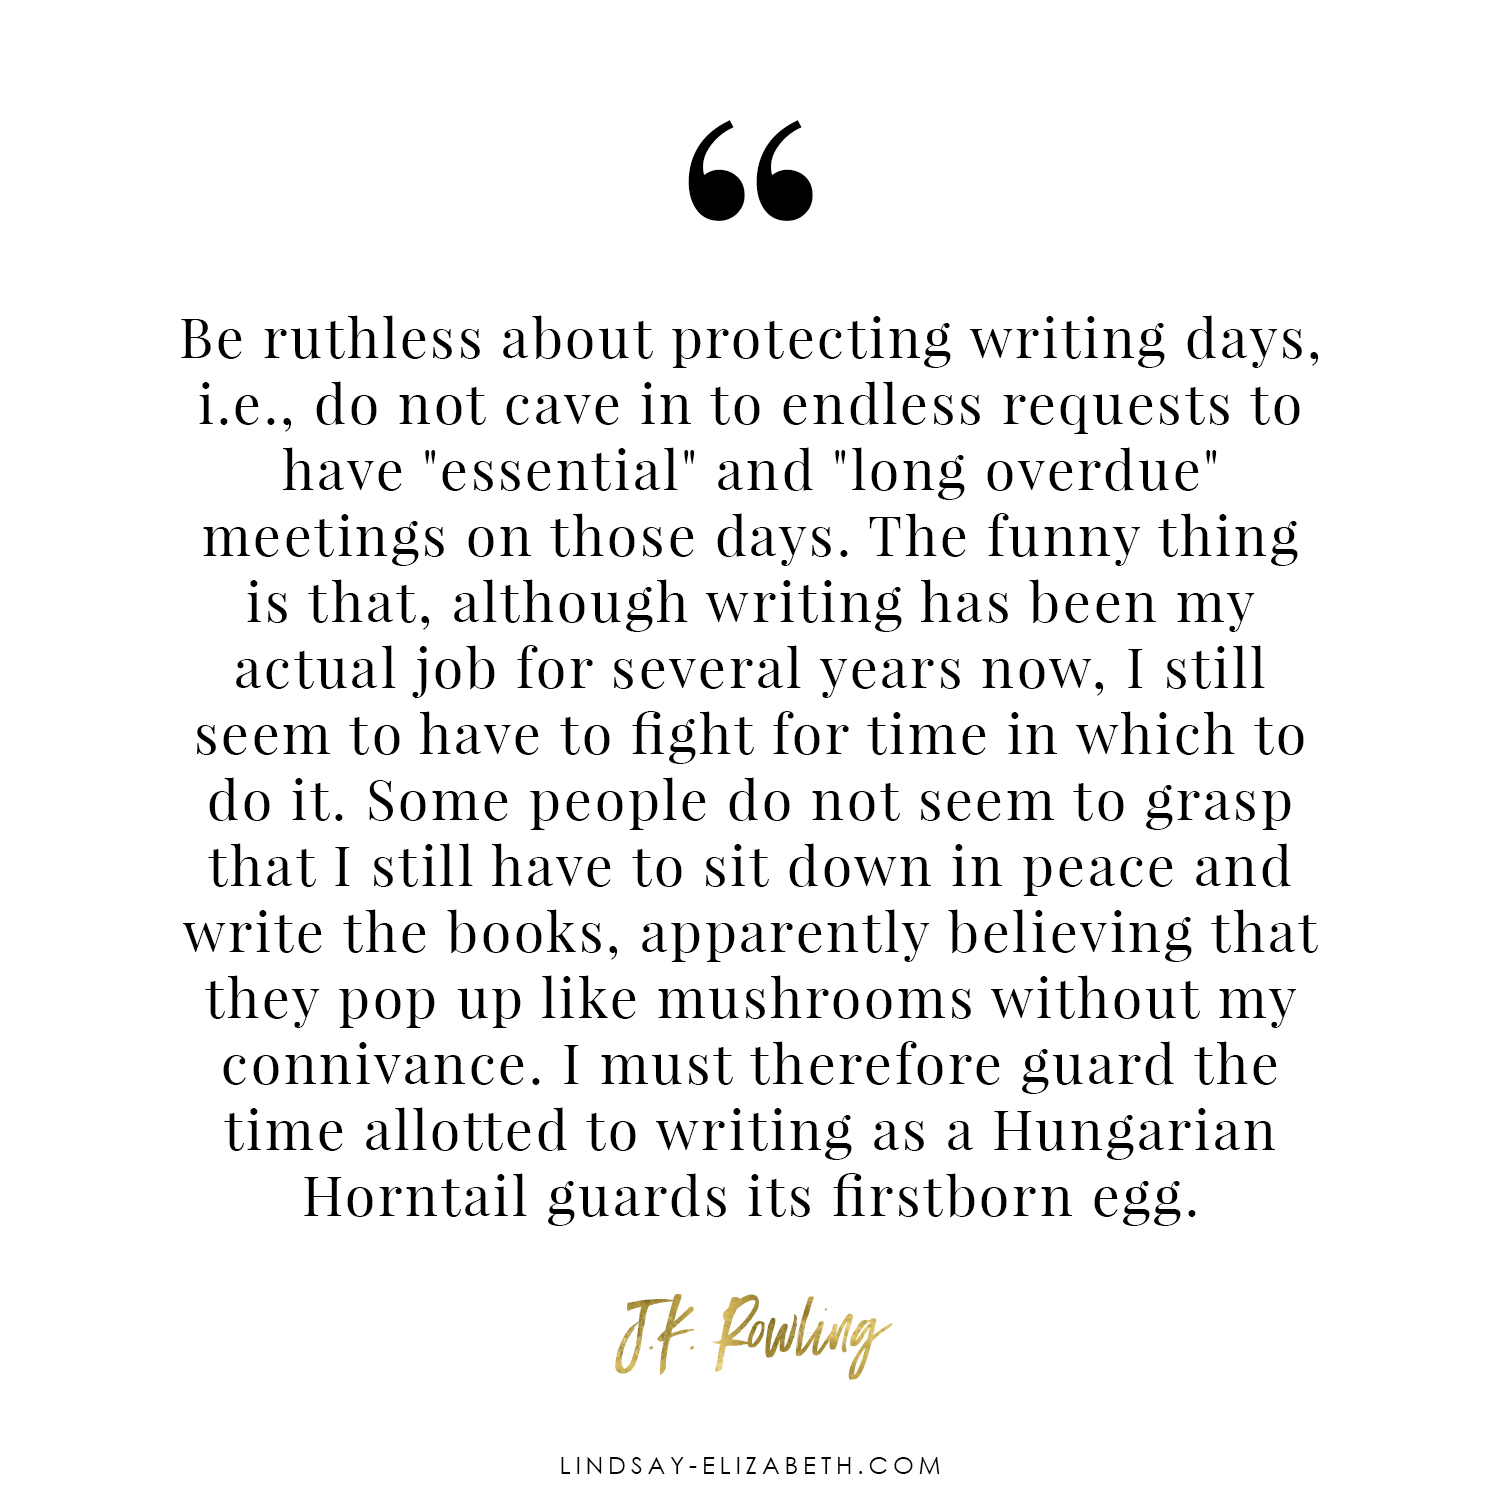 """""""Be ruthless about protecting writing days, i.e., do not cave in to endless requests to have """"essential"""" and """"long overdue"""" meetings on those days."""" - JK Rowling quote on #writing"""